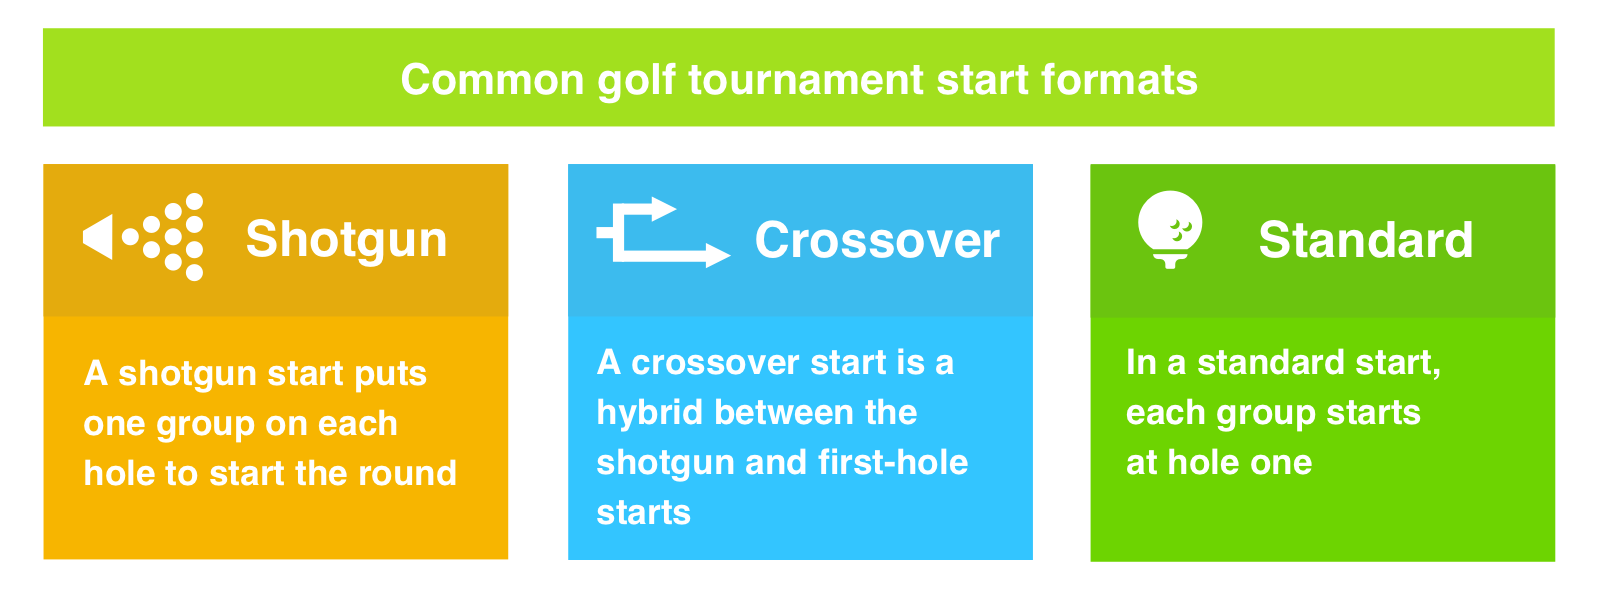 golf-tournament-formats-1